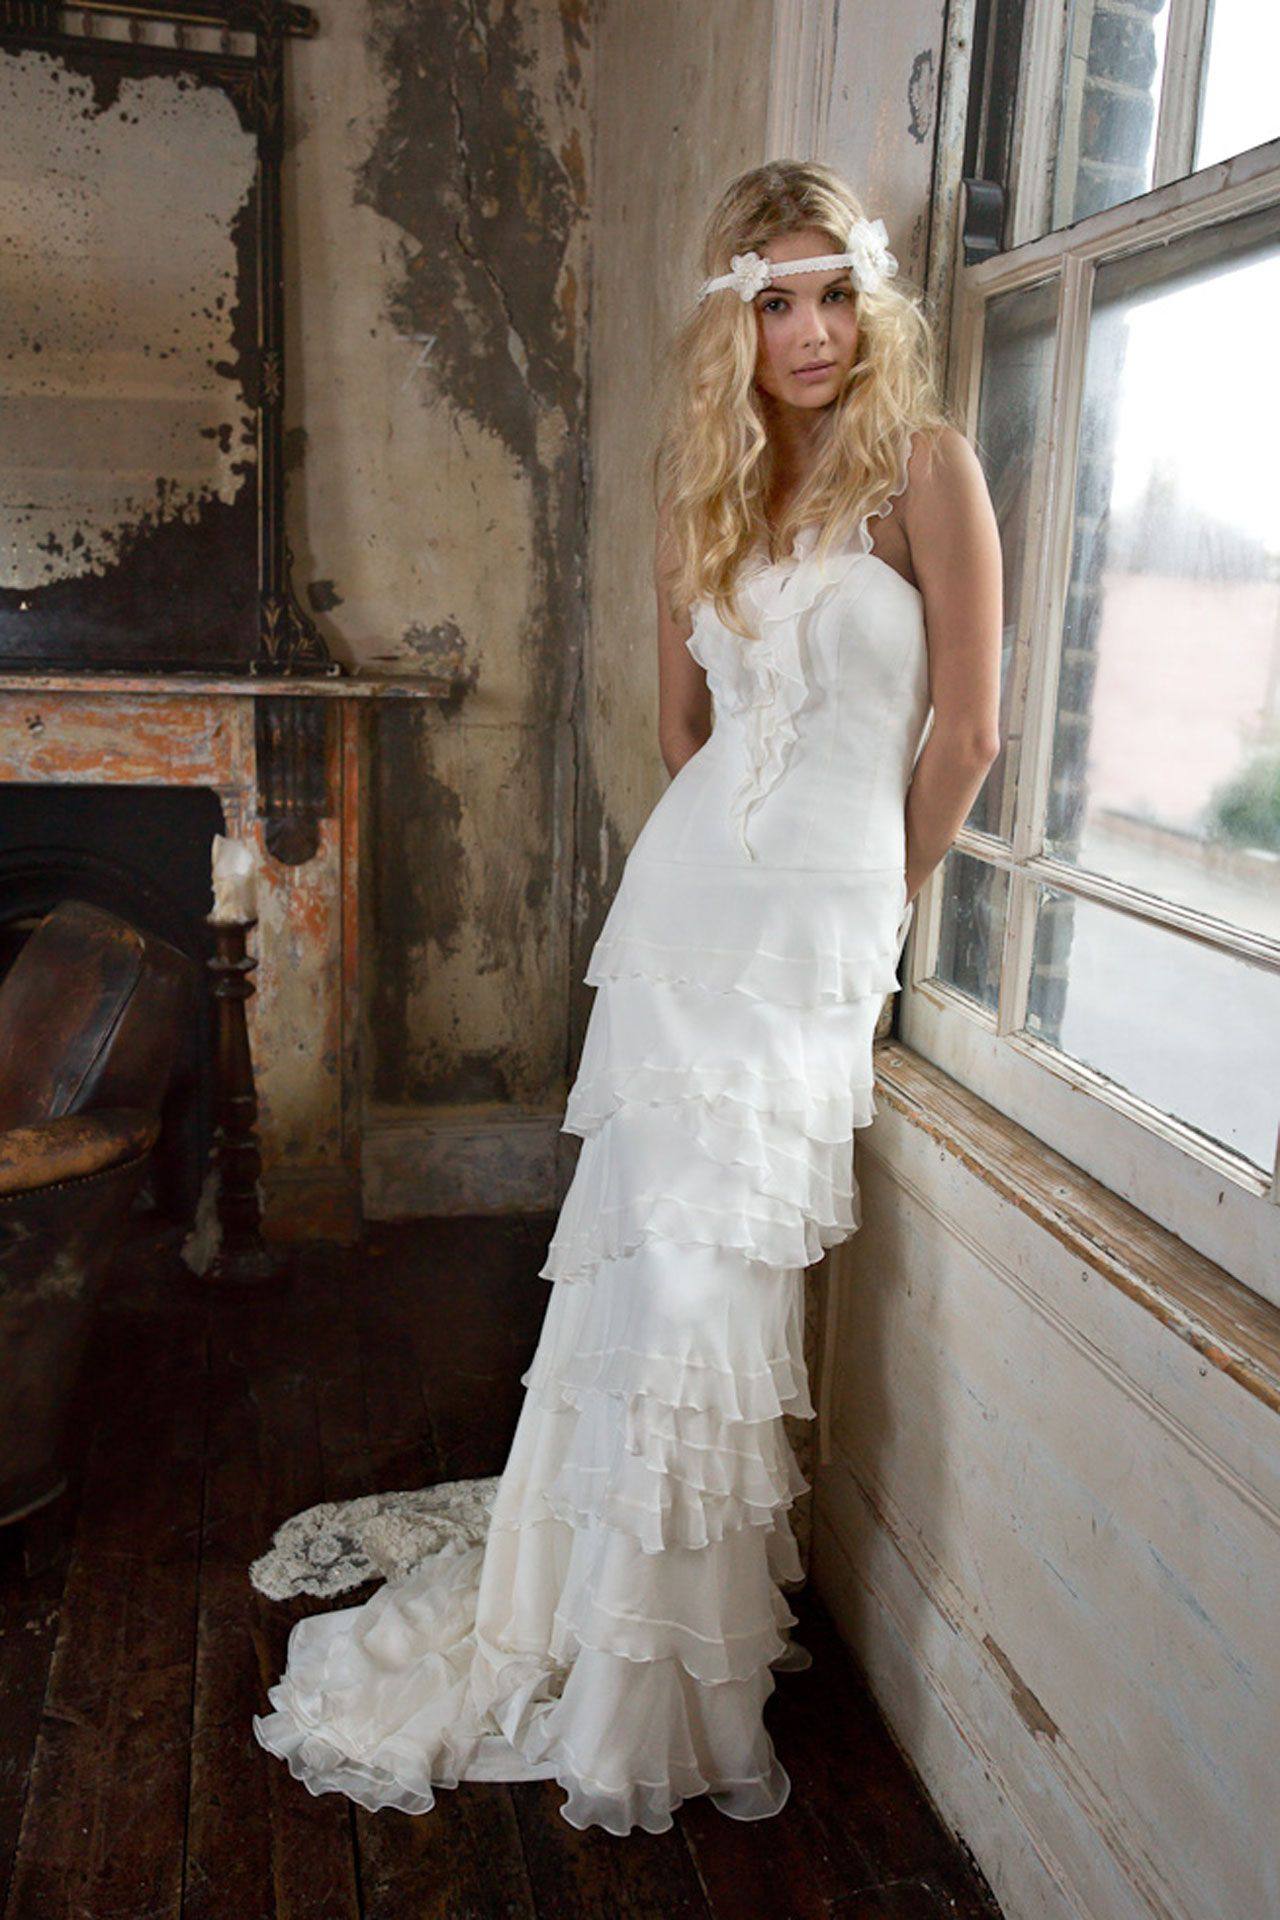 Trying on wedding dresses for the first time  Wedding Dresses  The Ultimate Gallery BridesMagazine